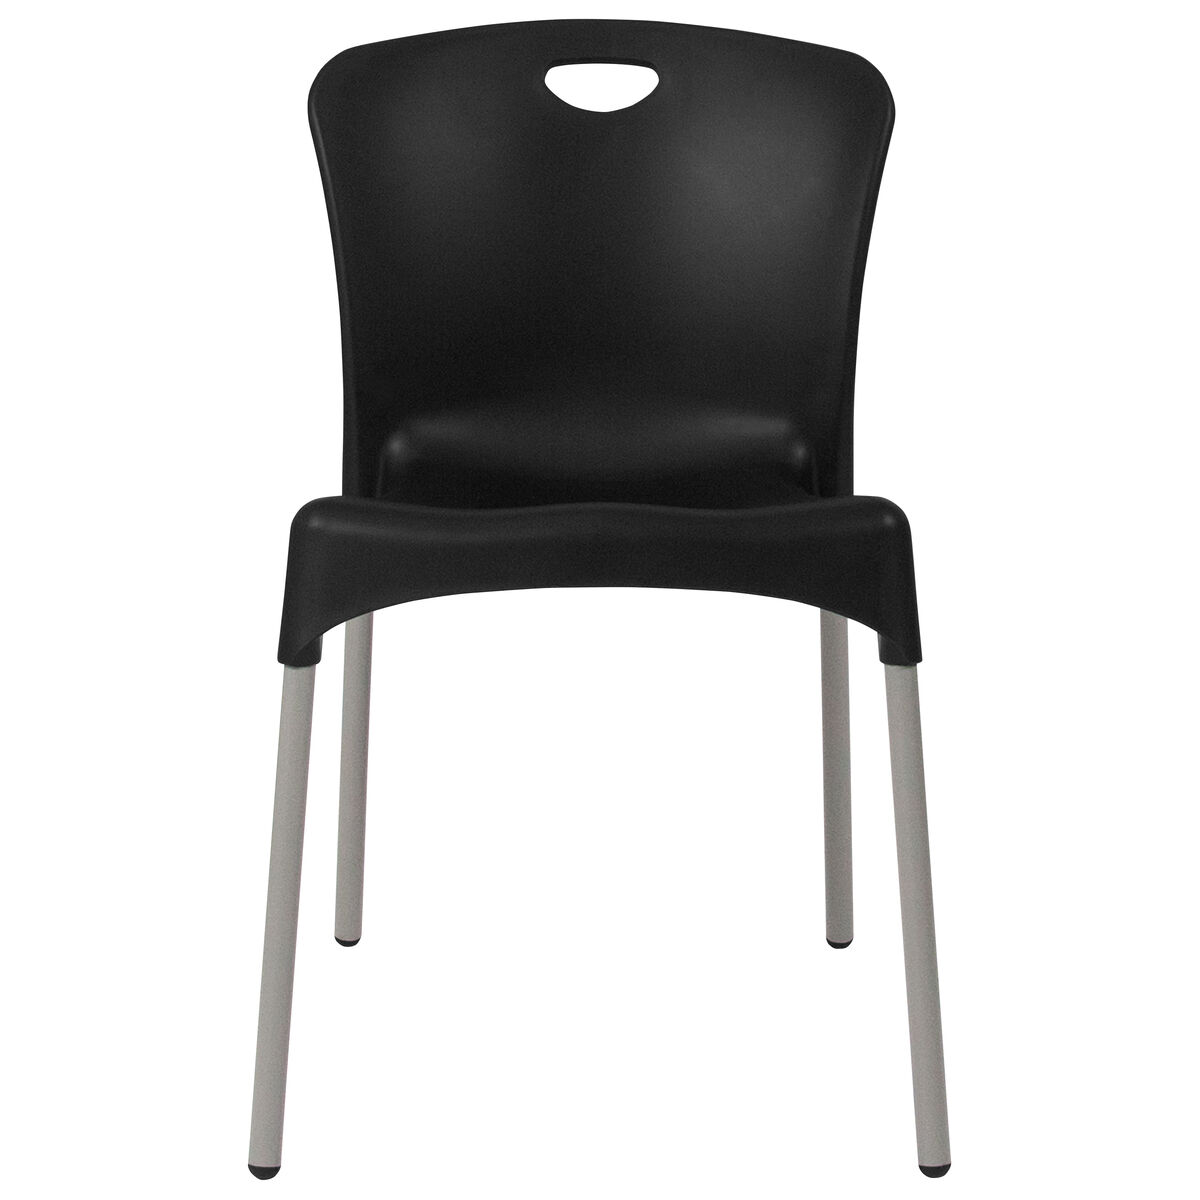 Black plastic stack chair dad ycd 42 ch gg for Furniture 4 schools